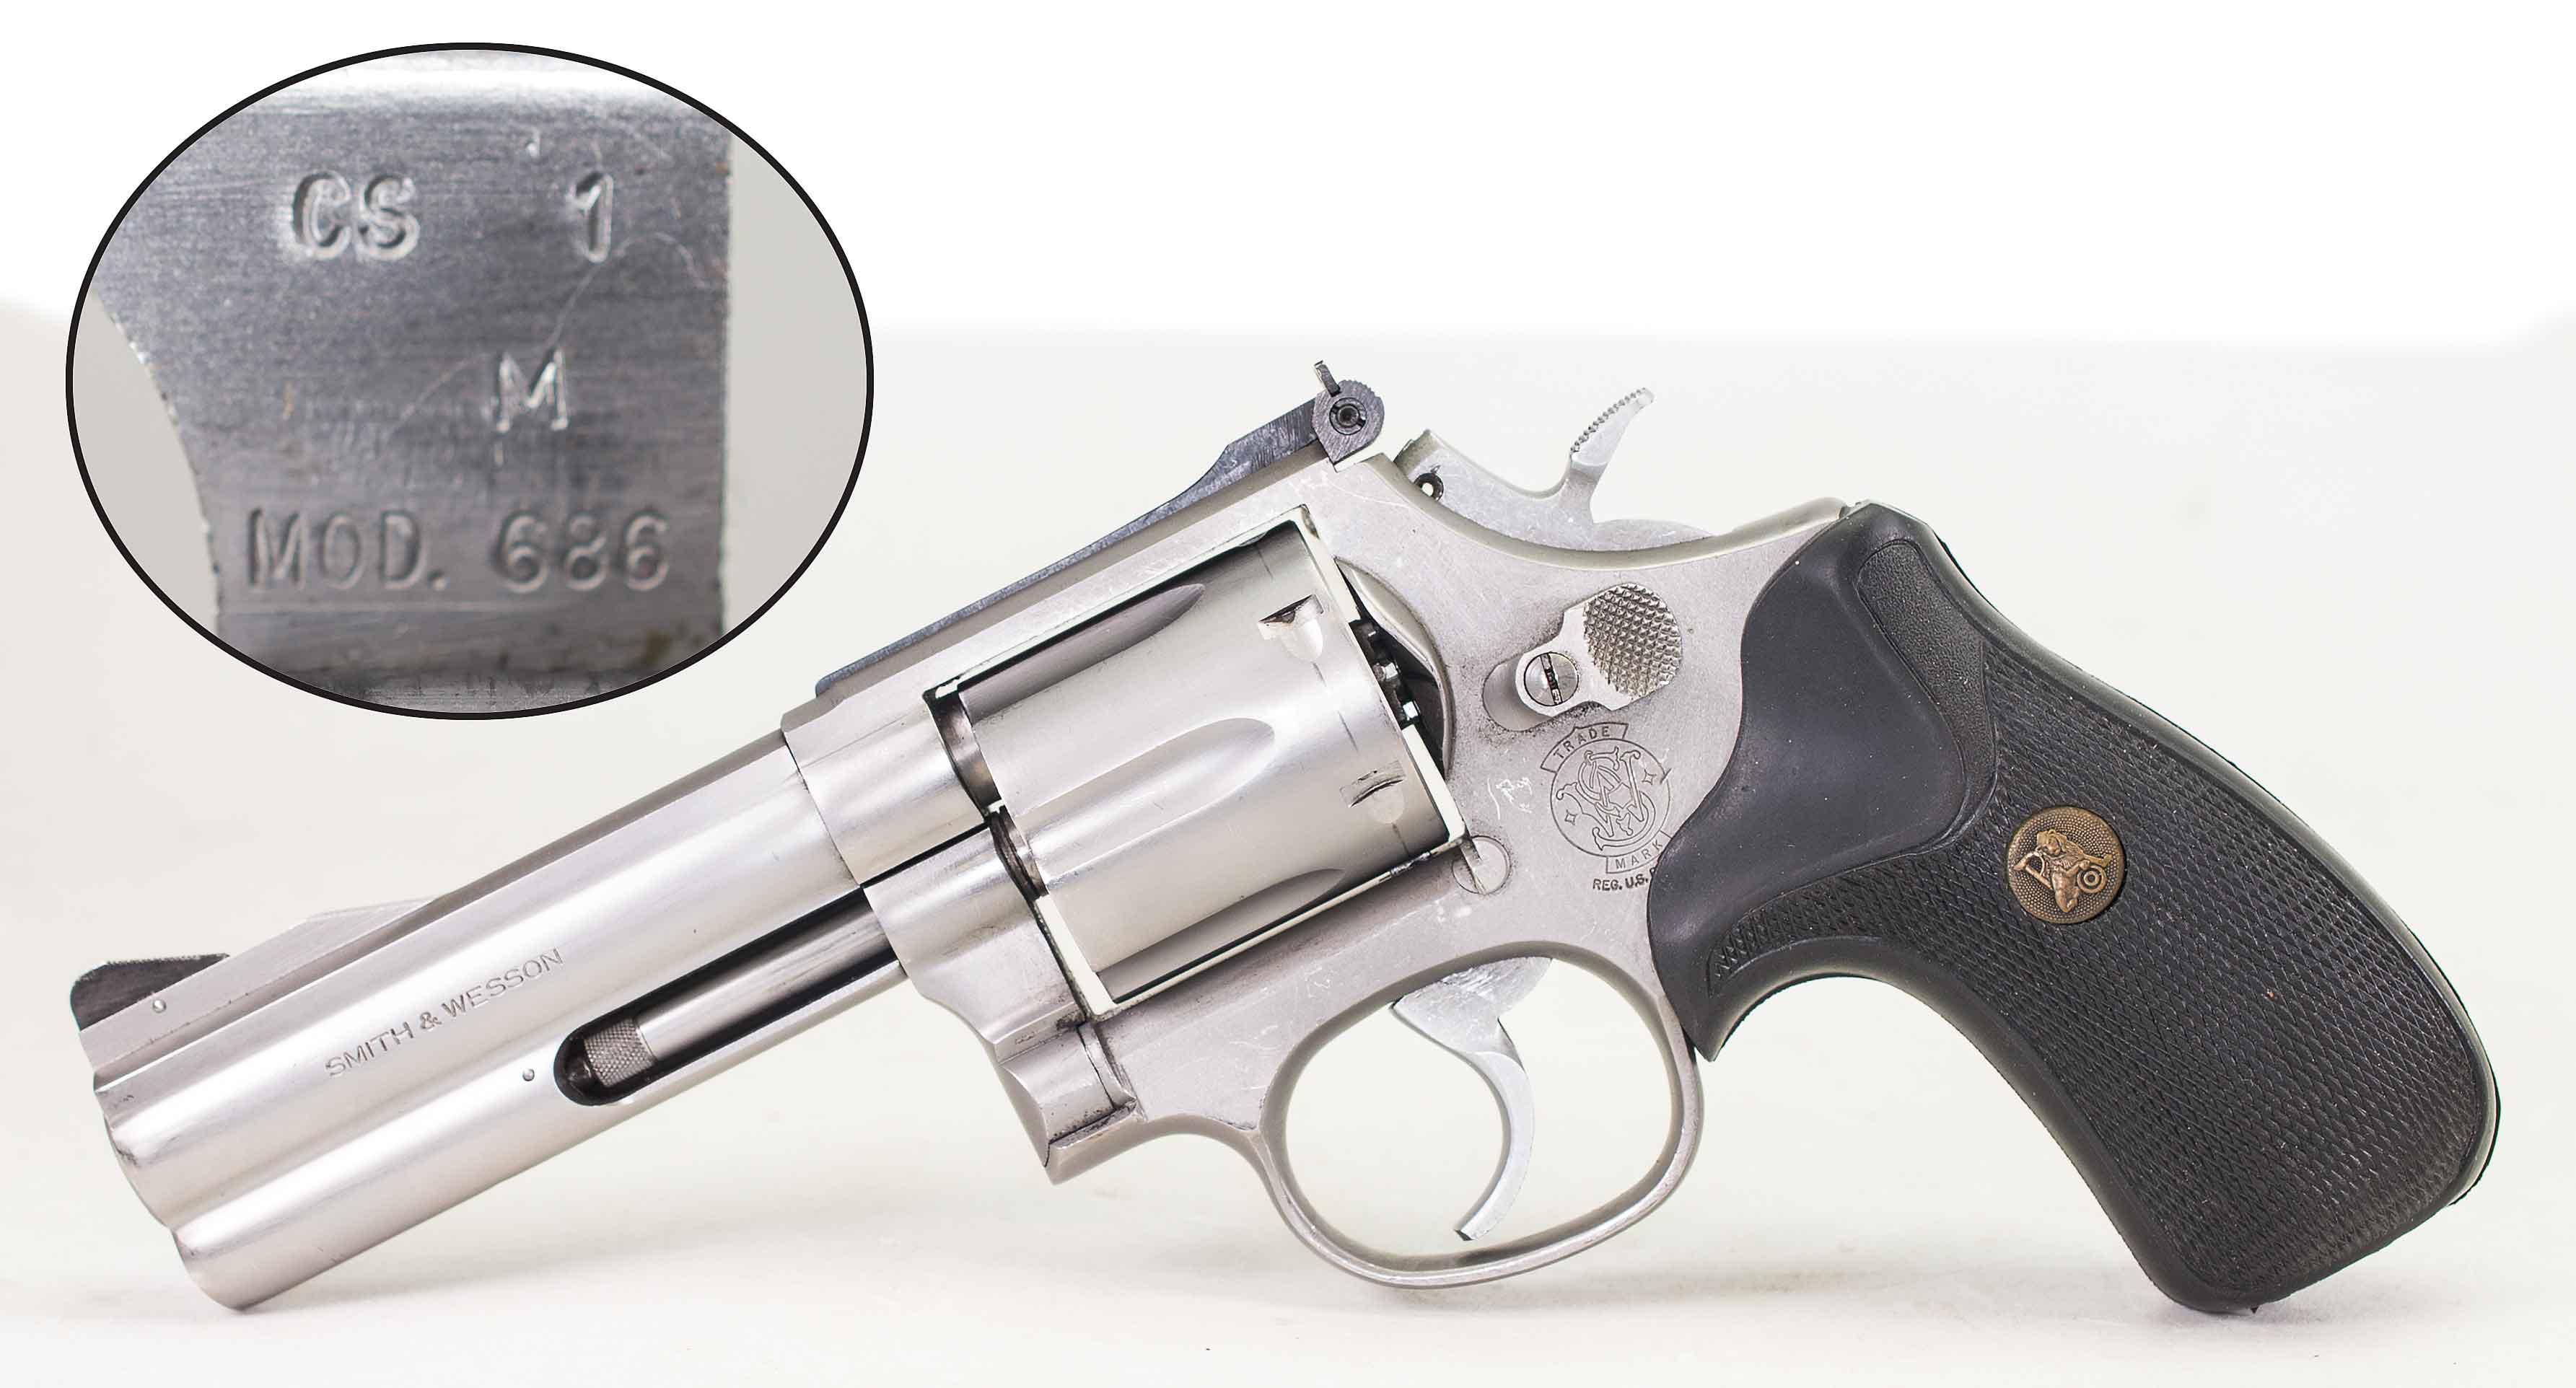 SMITH AND WESSON MODEL 686 (Auction ID: 11793215, End Time : Jul. 01 ...